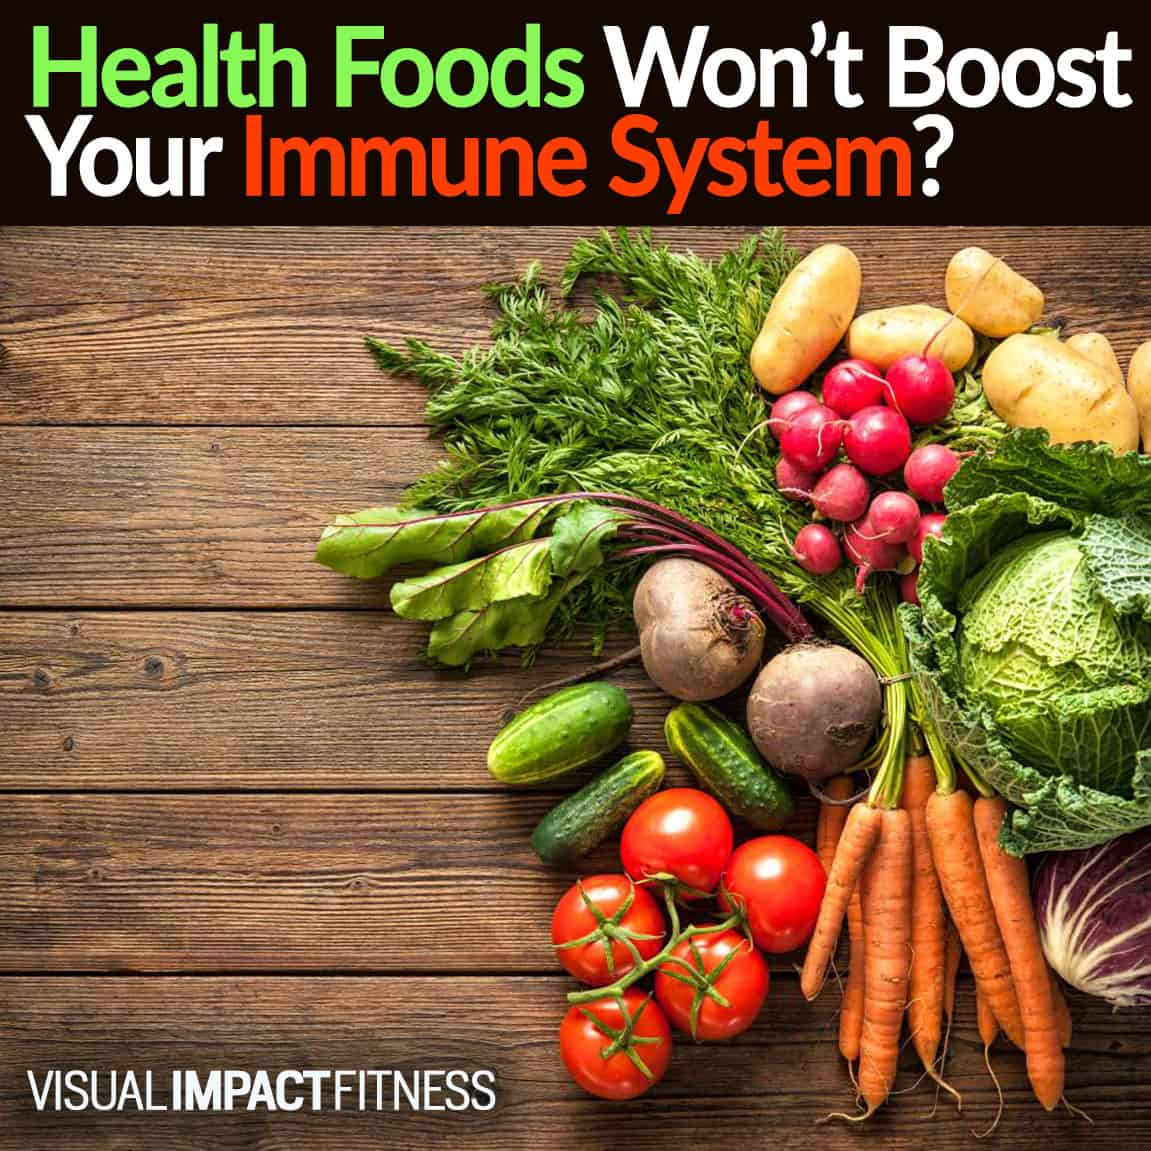 Health Foods Won't Boost Your Immune System?